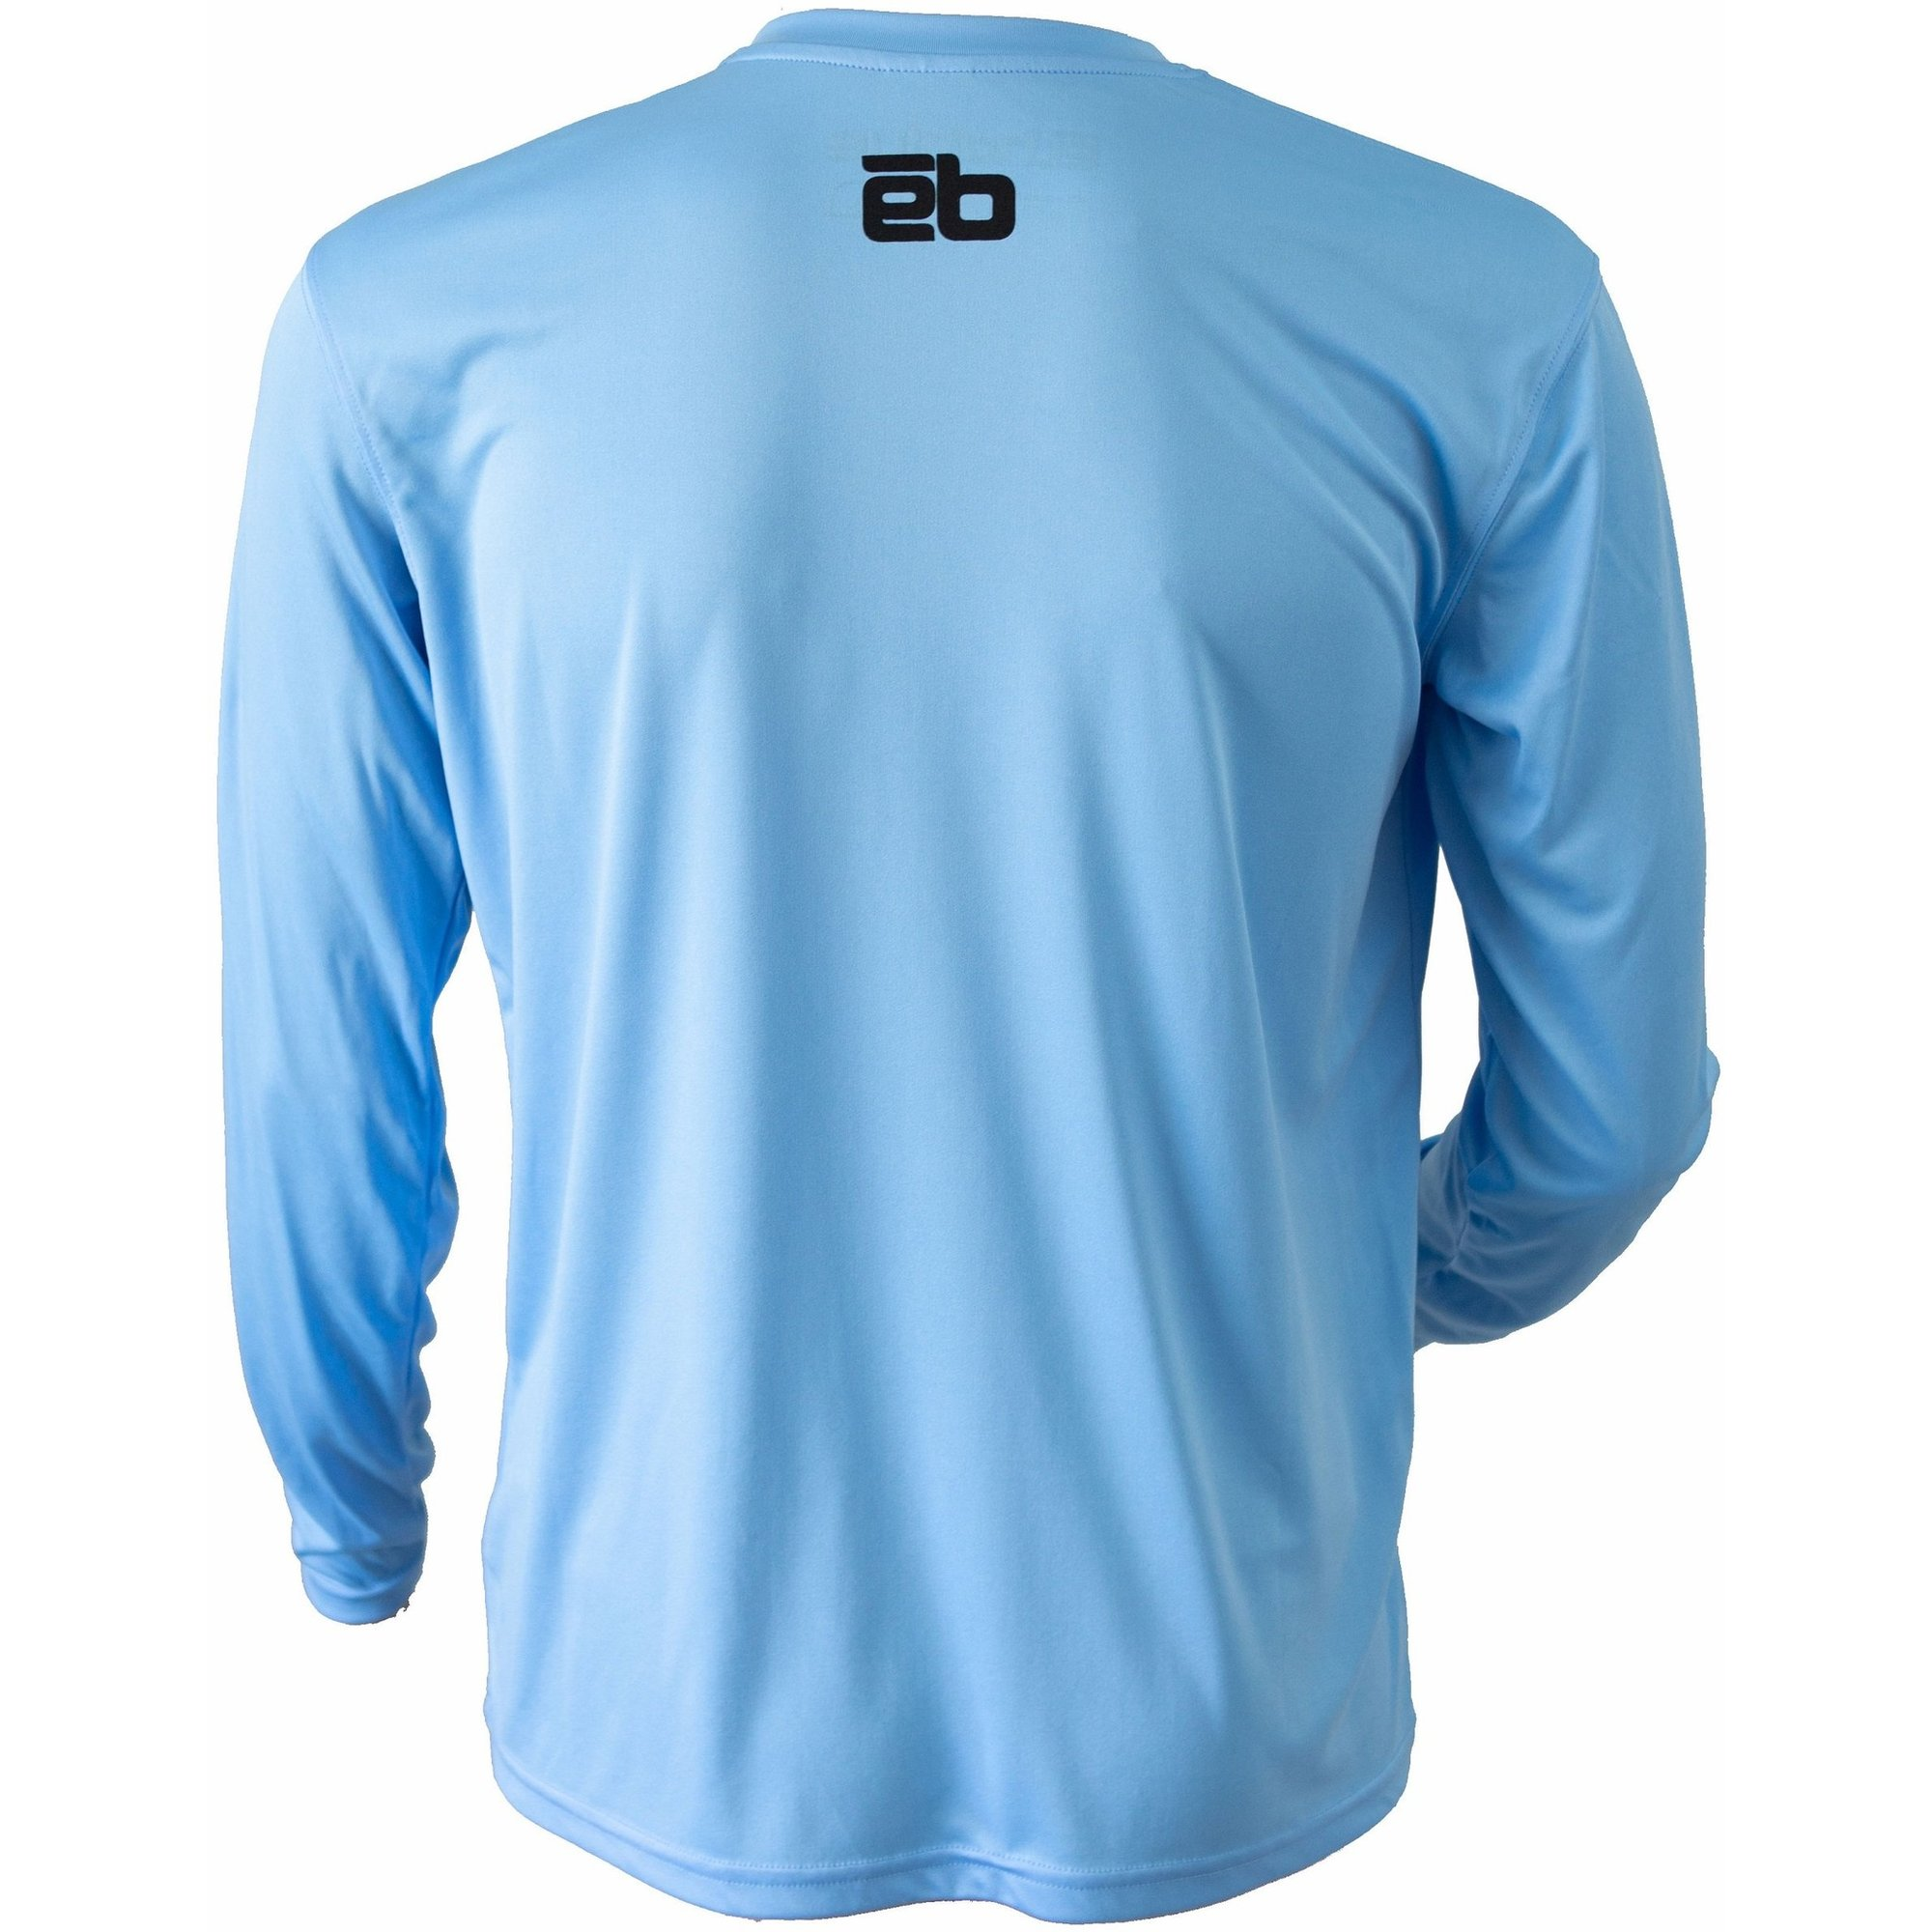 ee850b6f4be3 ēthoblue Classic Long Sleeve Solar - ēthoblue Performance Gear